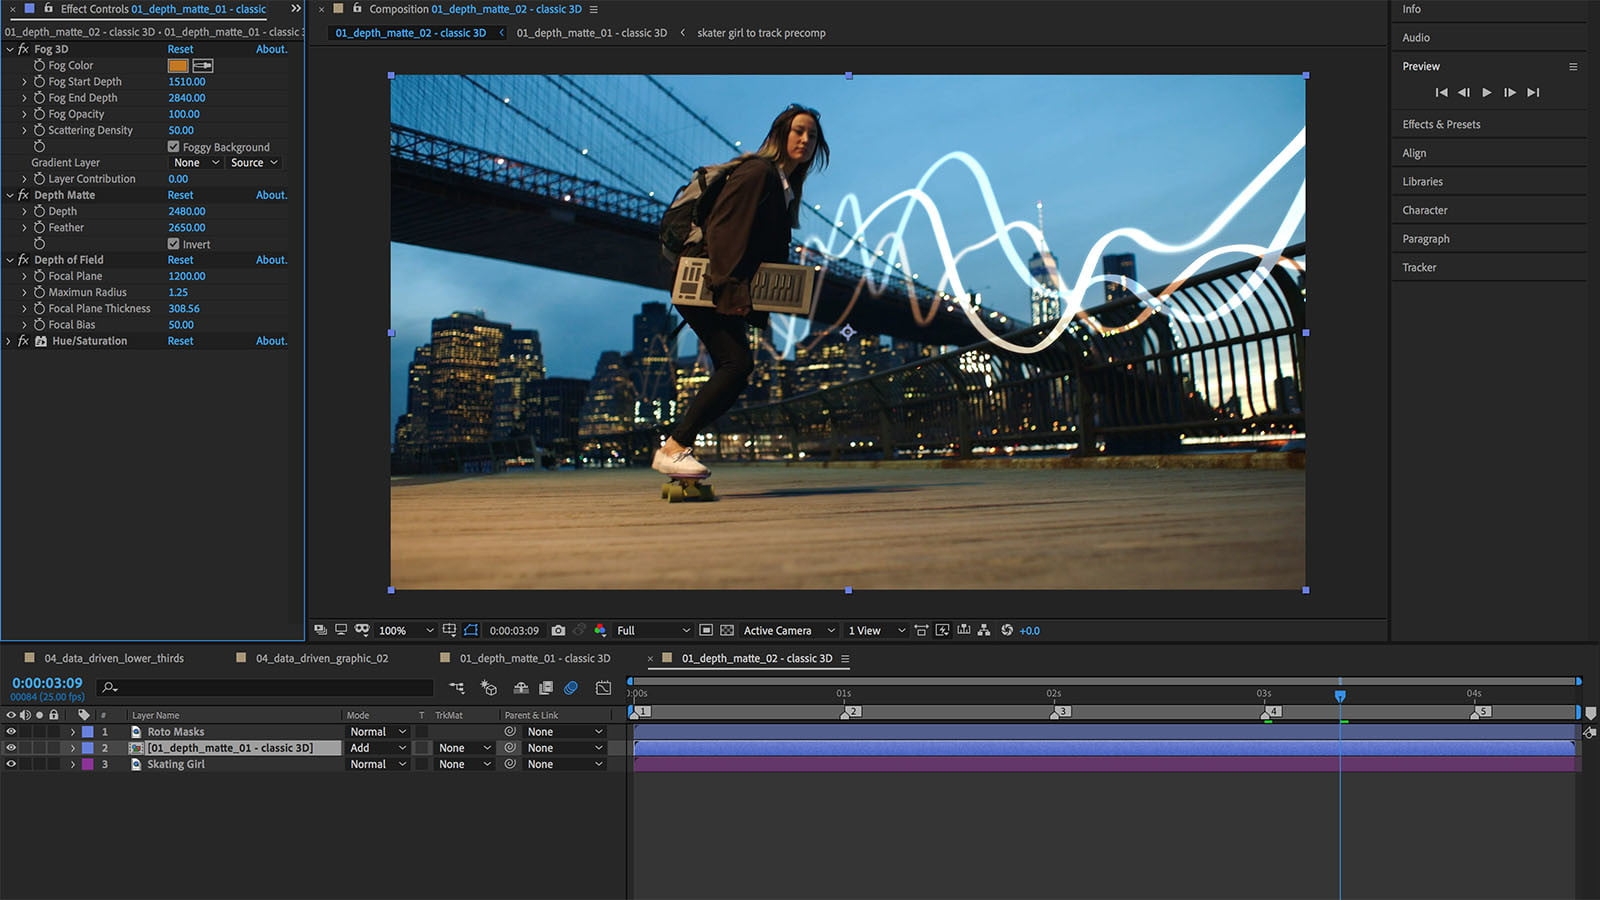 With A I , Adobe Premiere Pro Streamlines Tedious Audio